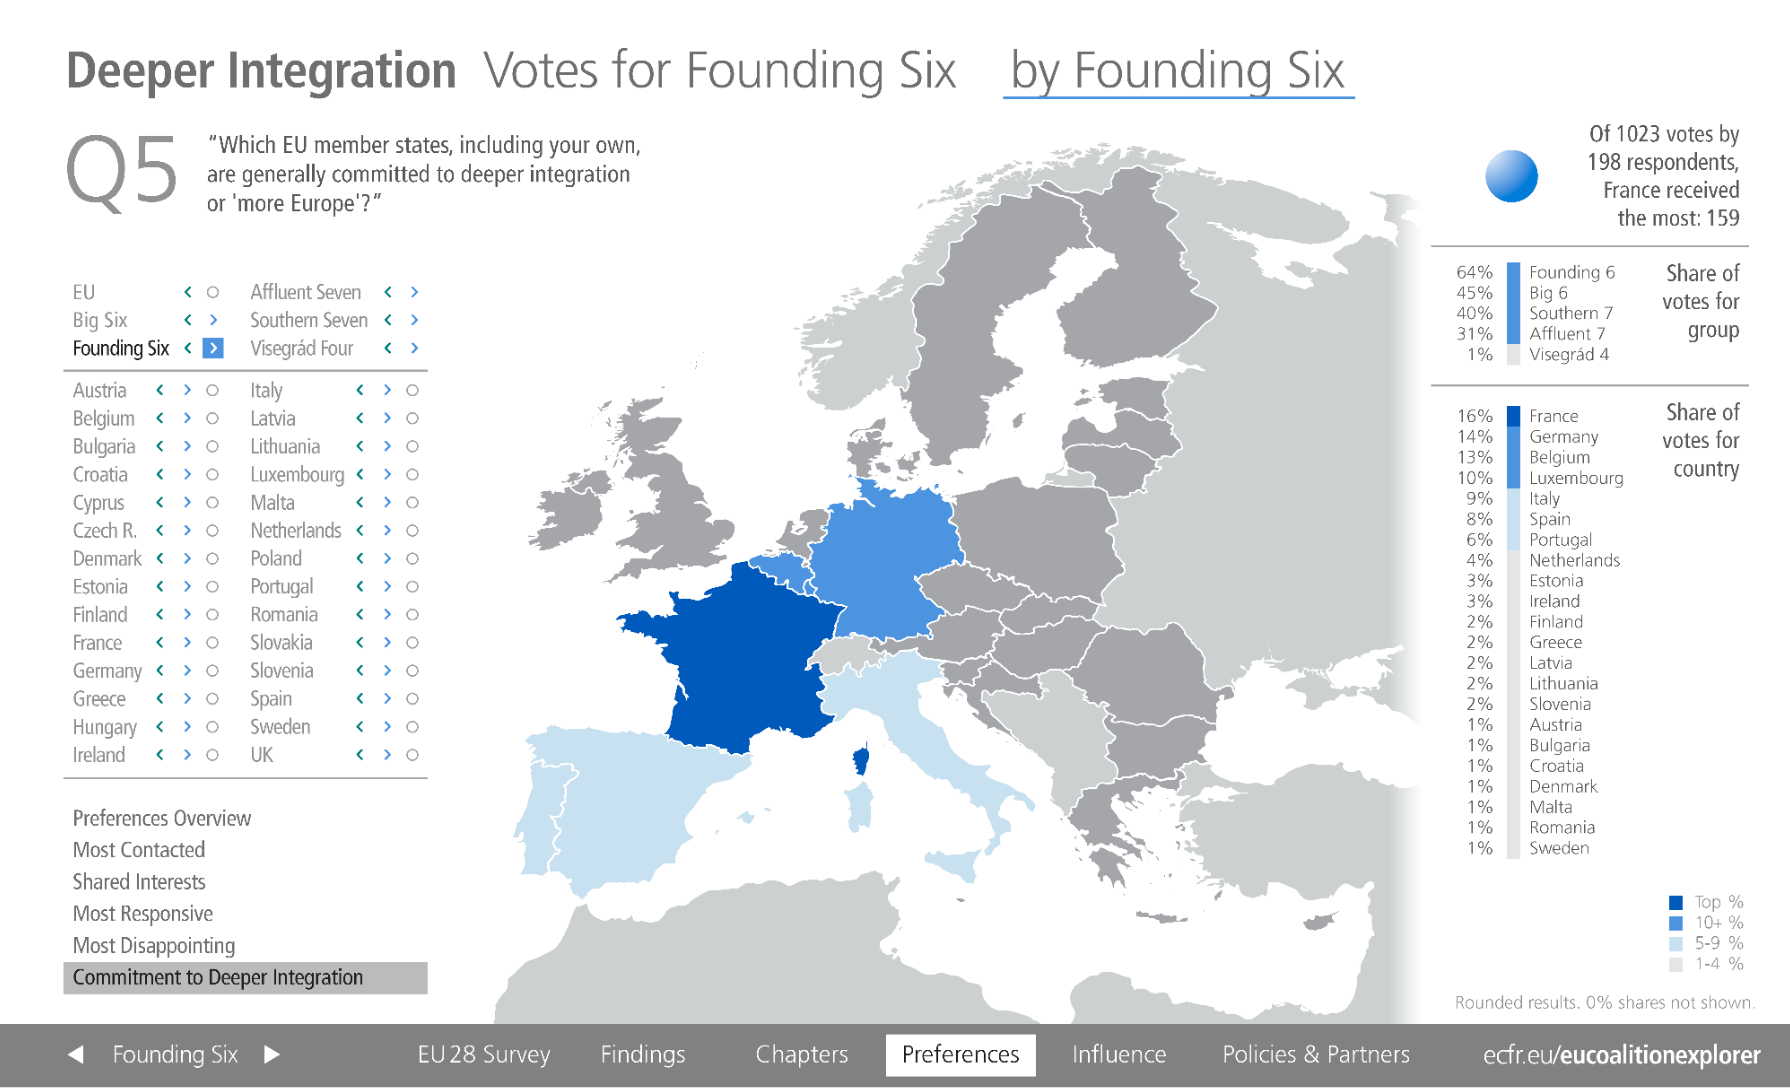 Committed to deeper EU integration EU Founding six